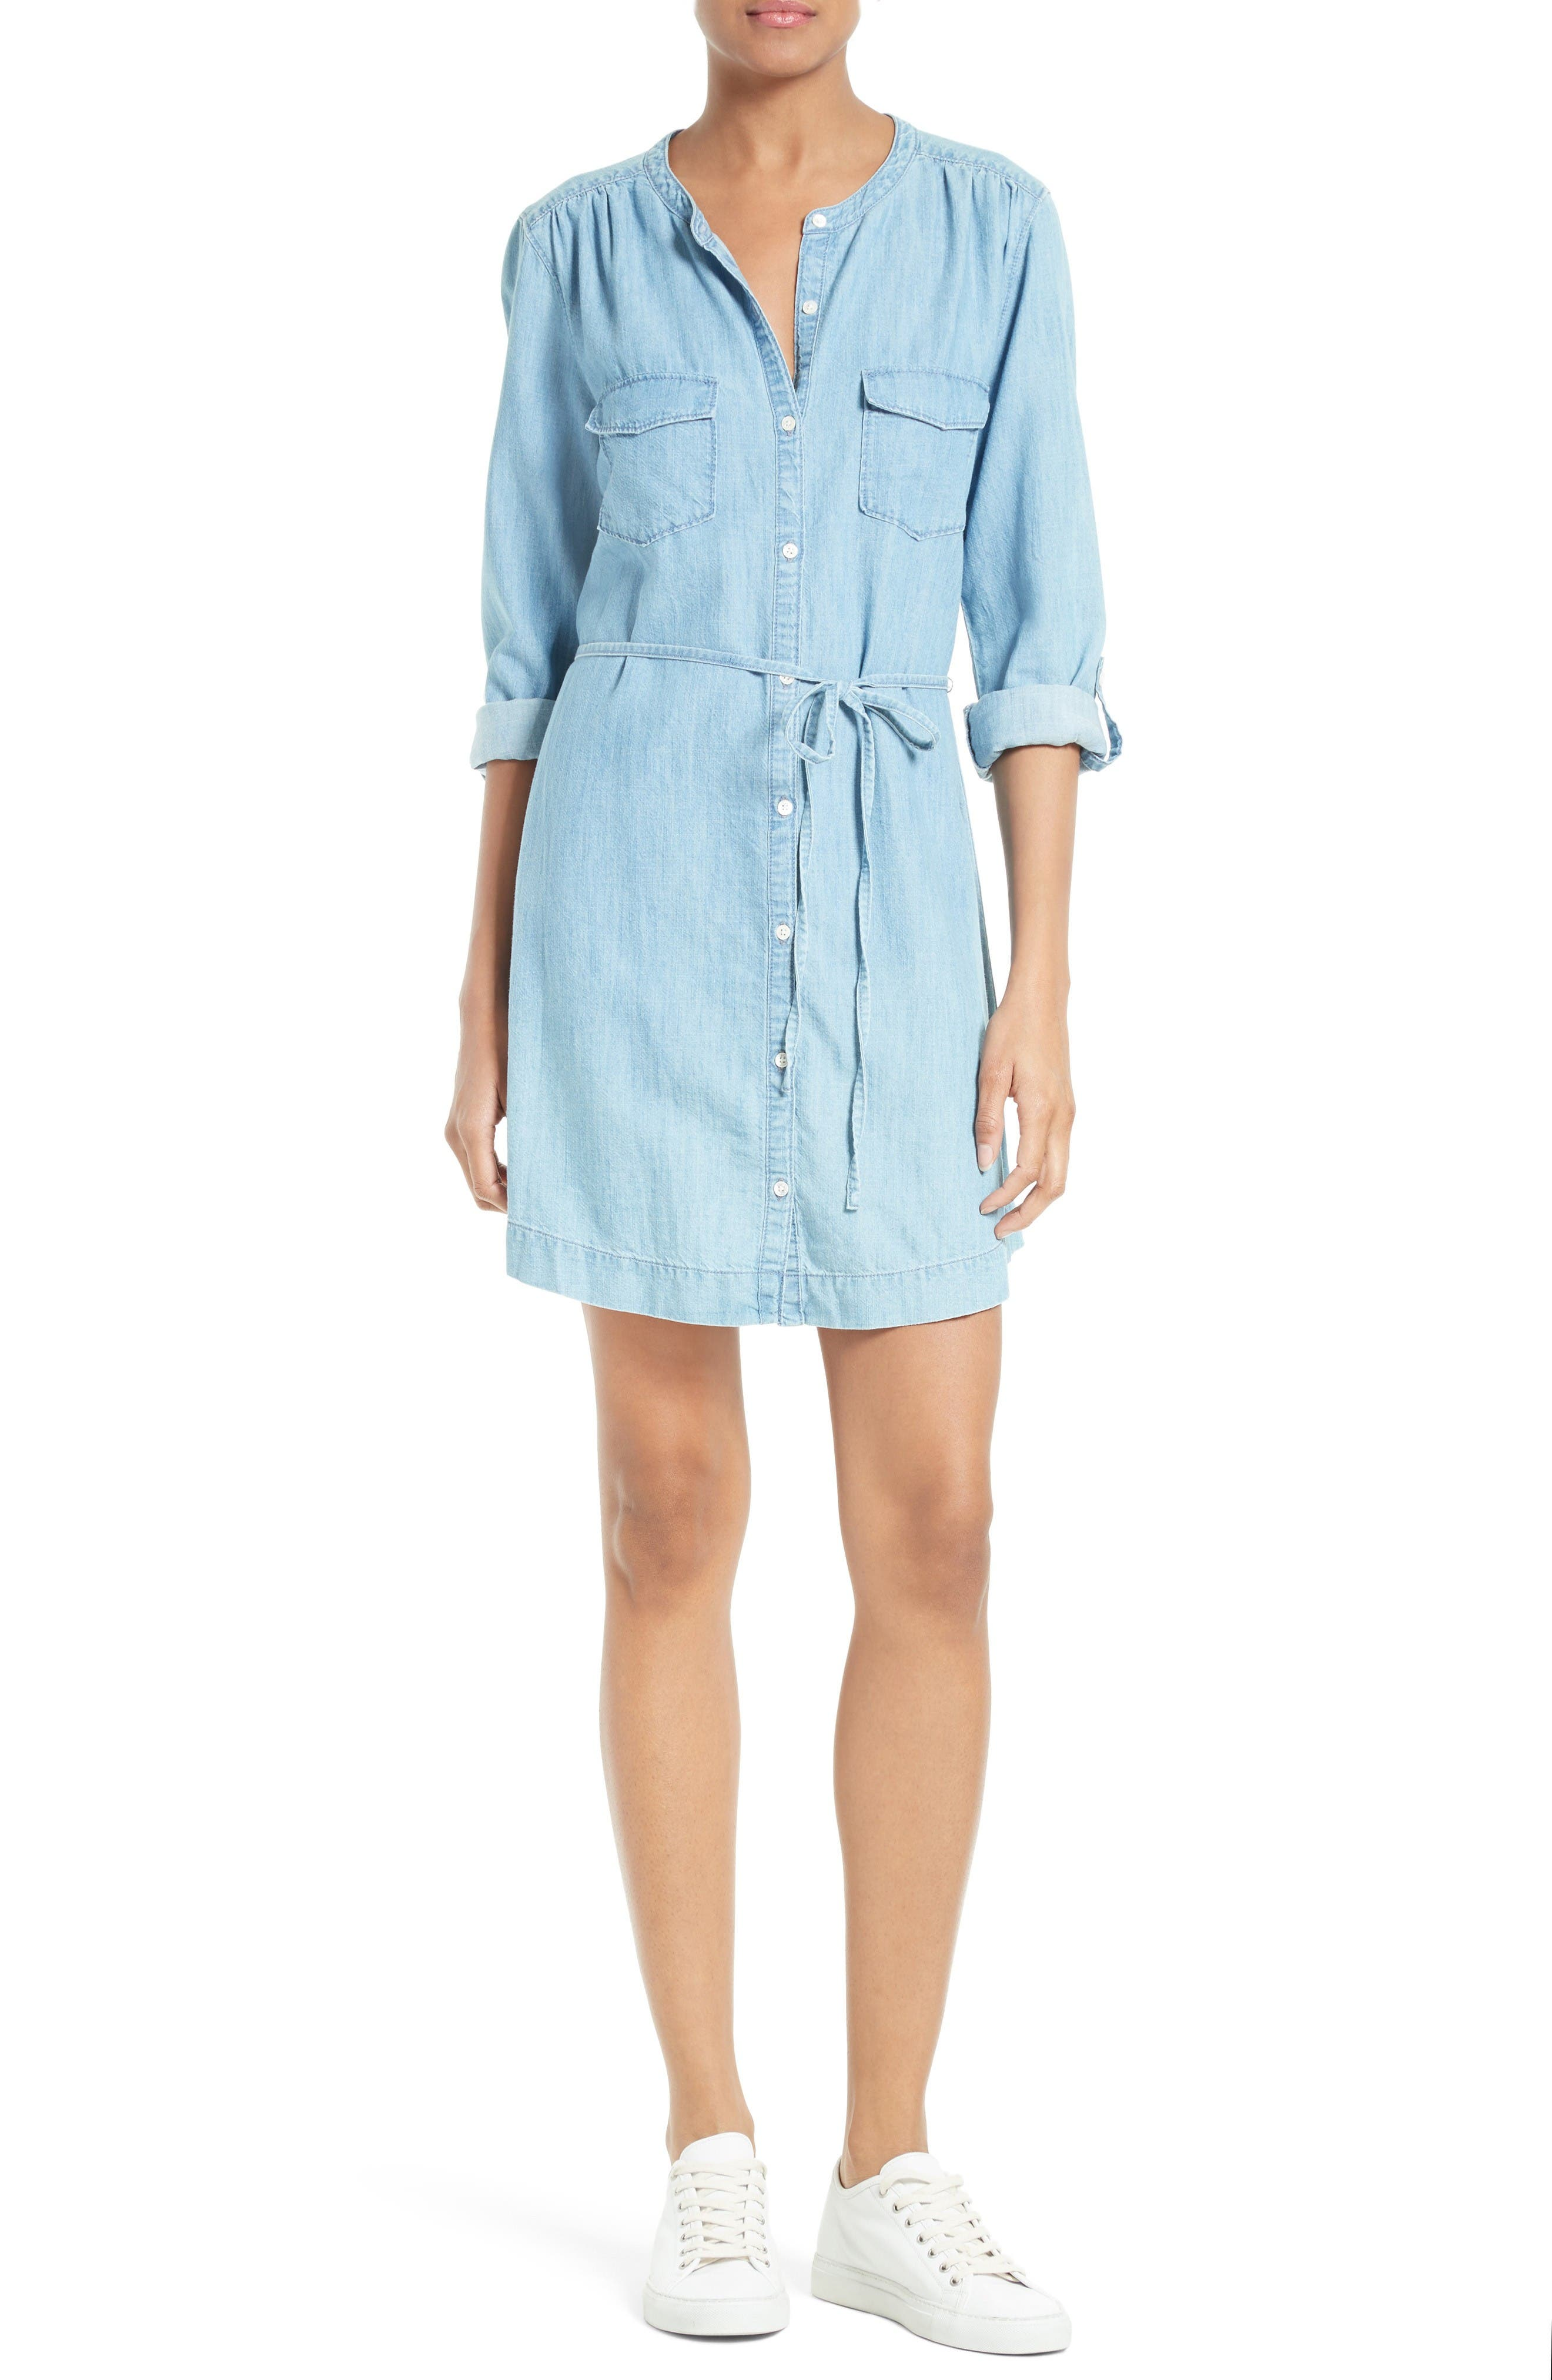 Main Image - Soft Joie Milli Chambray Shirtdress